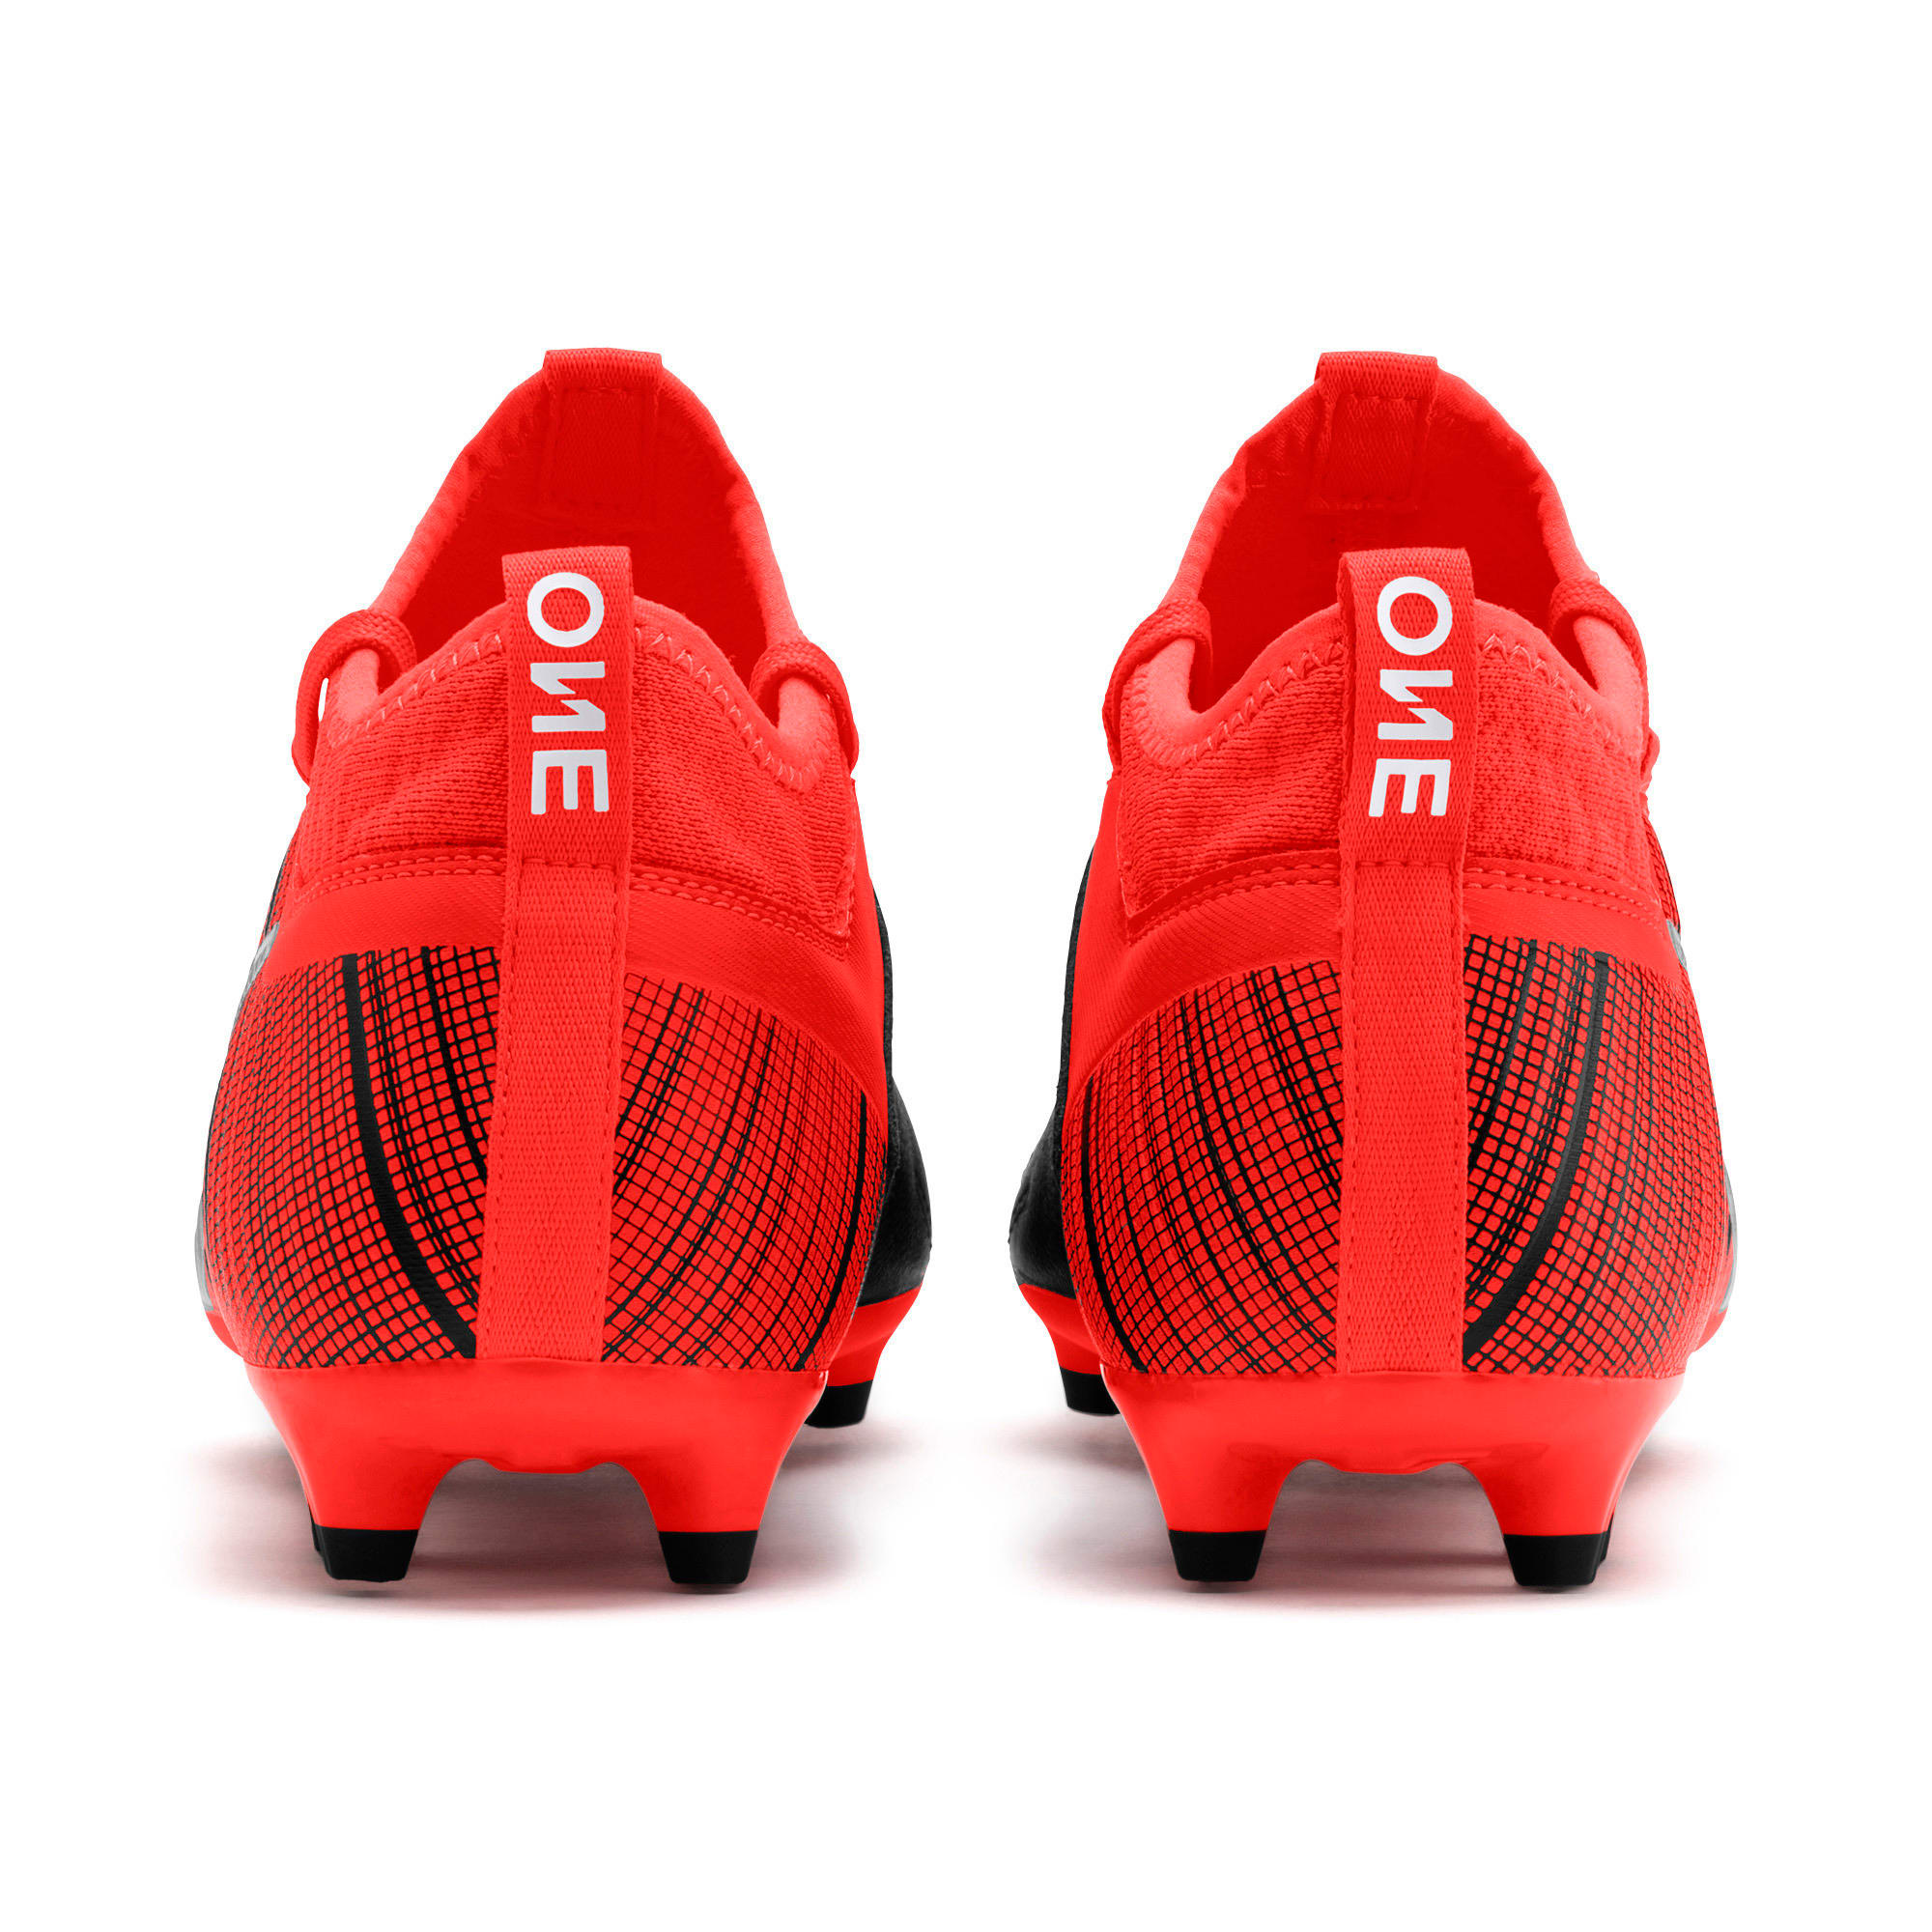 Thumbnail 4 of PUMA ONE 5.3 FG/AG Men's Football Boots, Black-Nrgy Red-Aged Silver, medium-IND